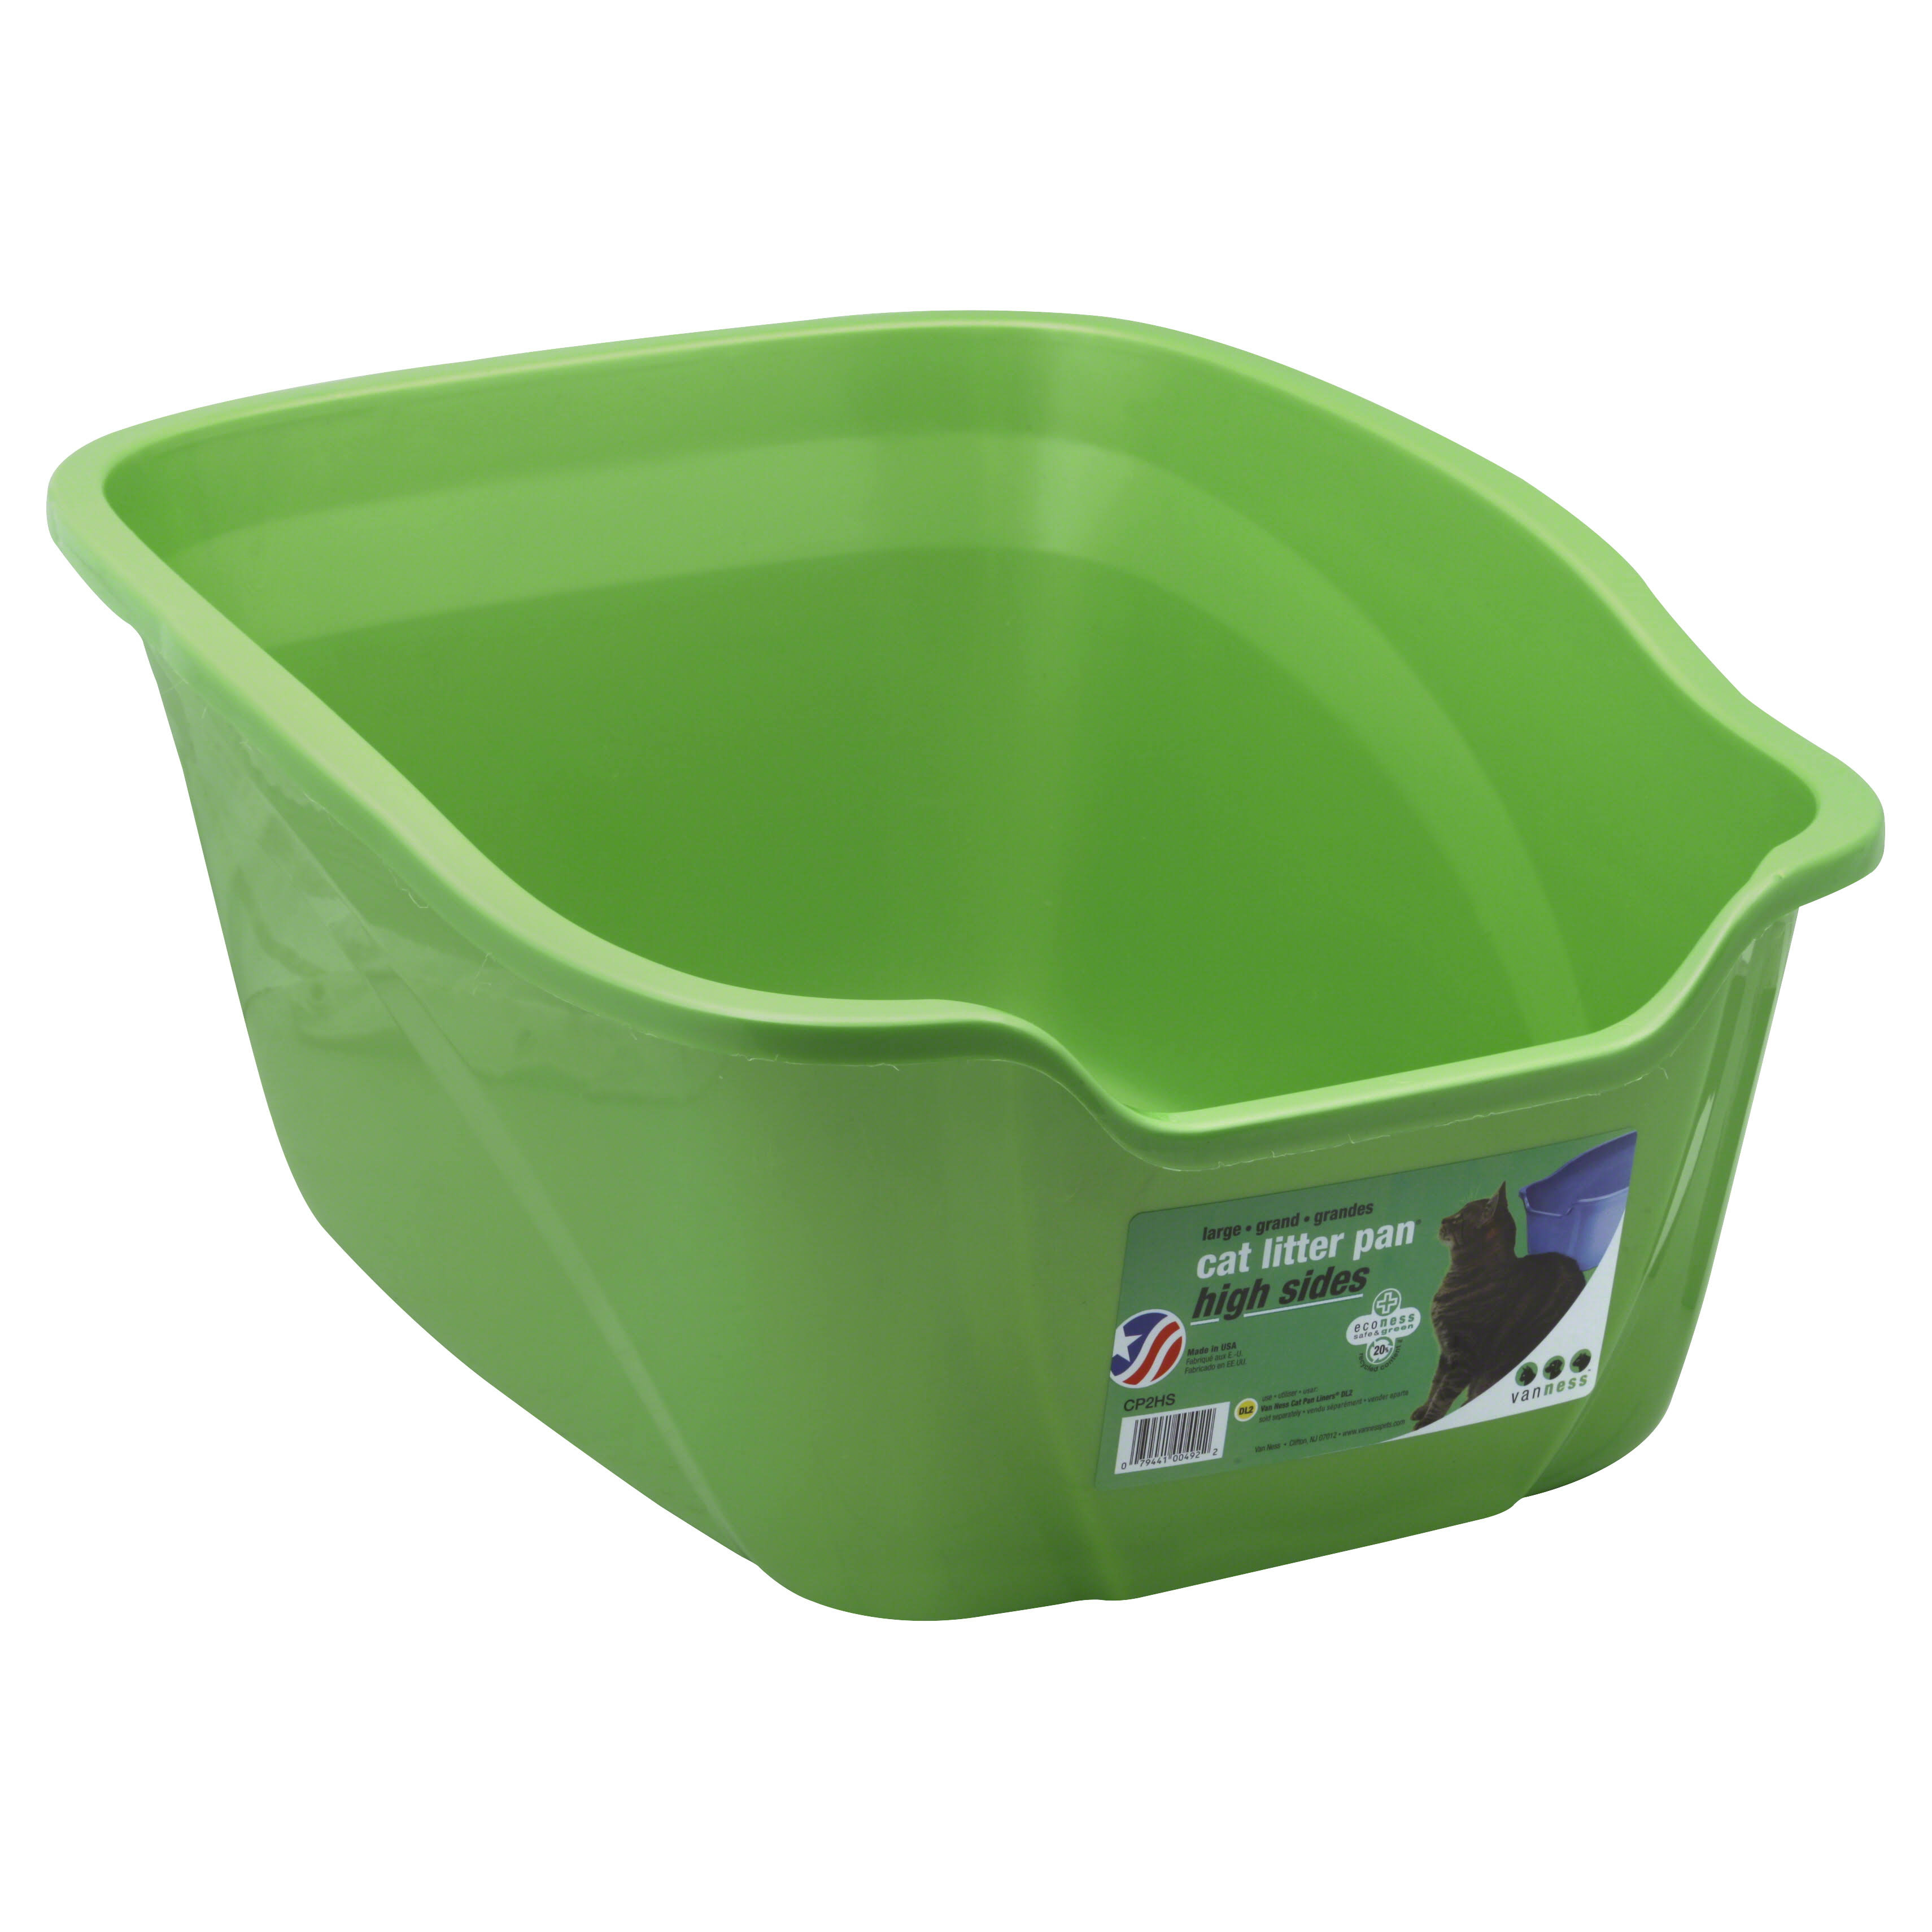 Van Ness High Sides Cat Litter Pan - Large